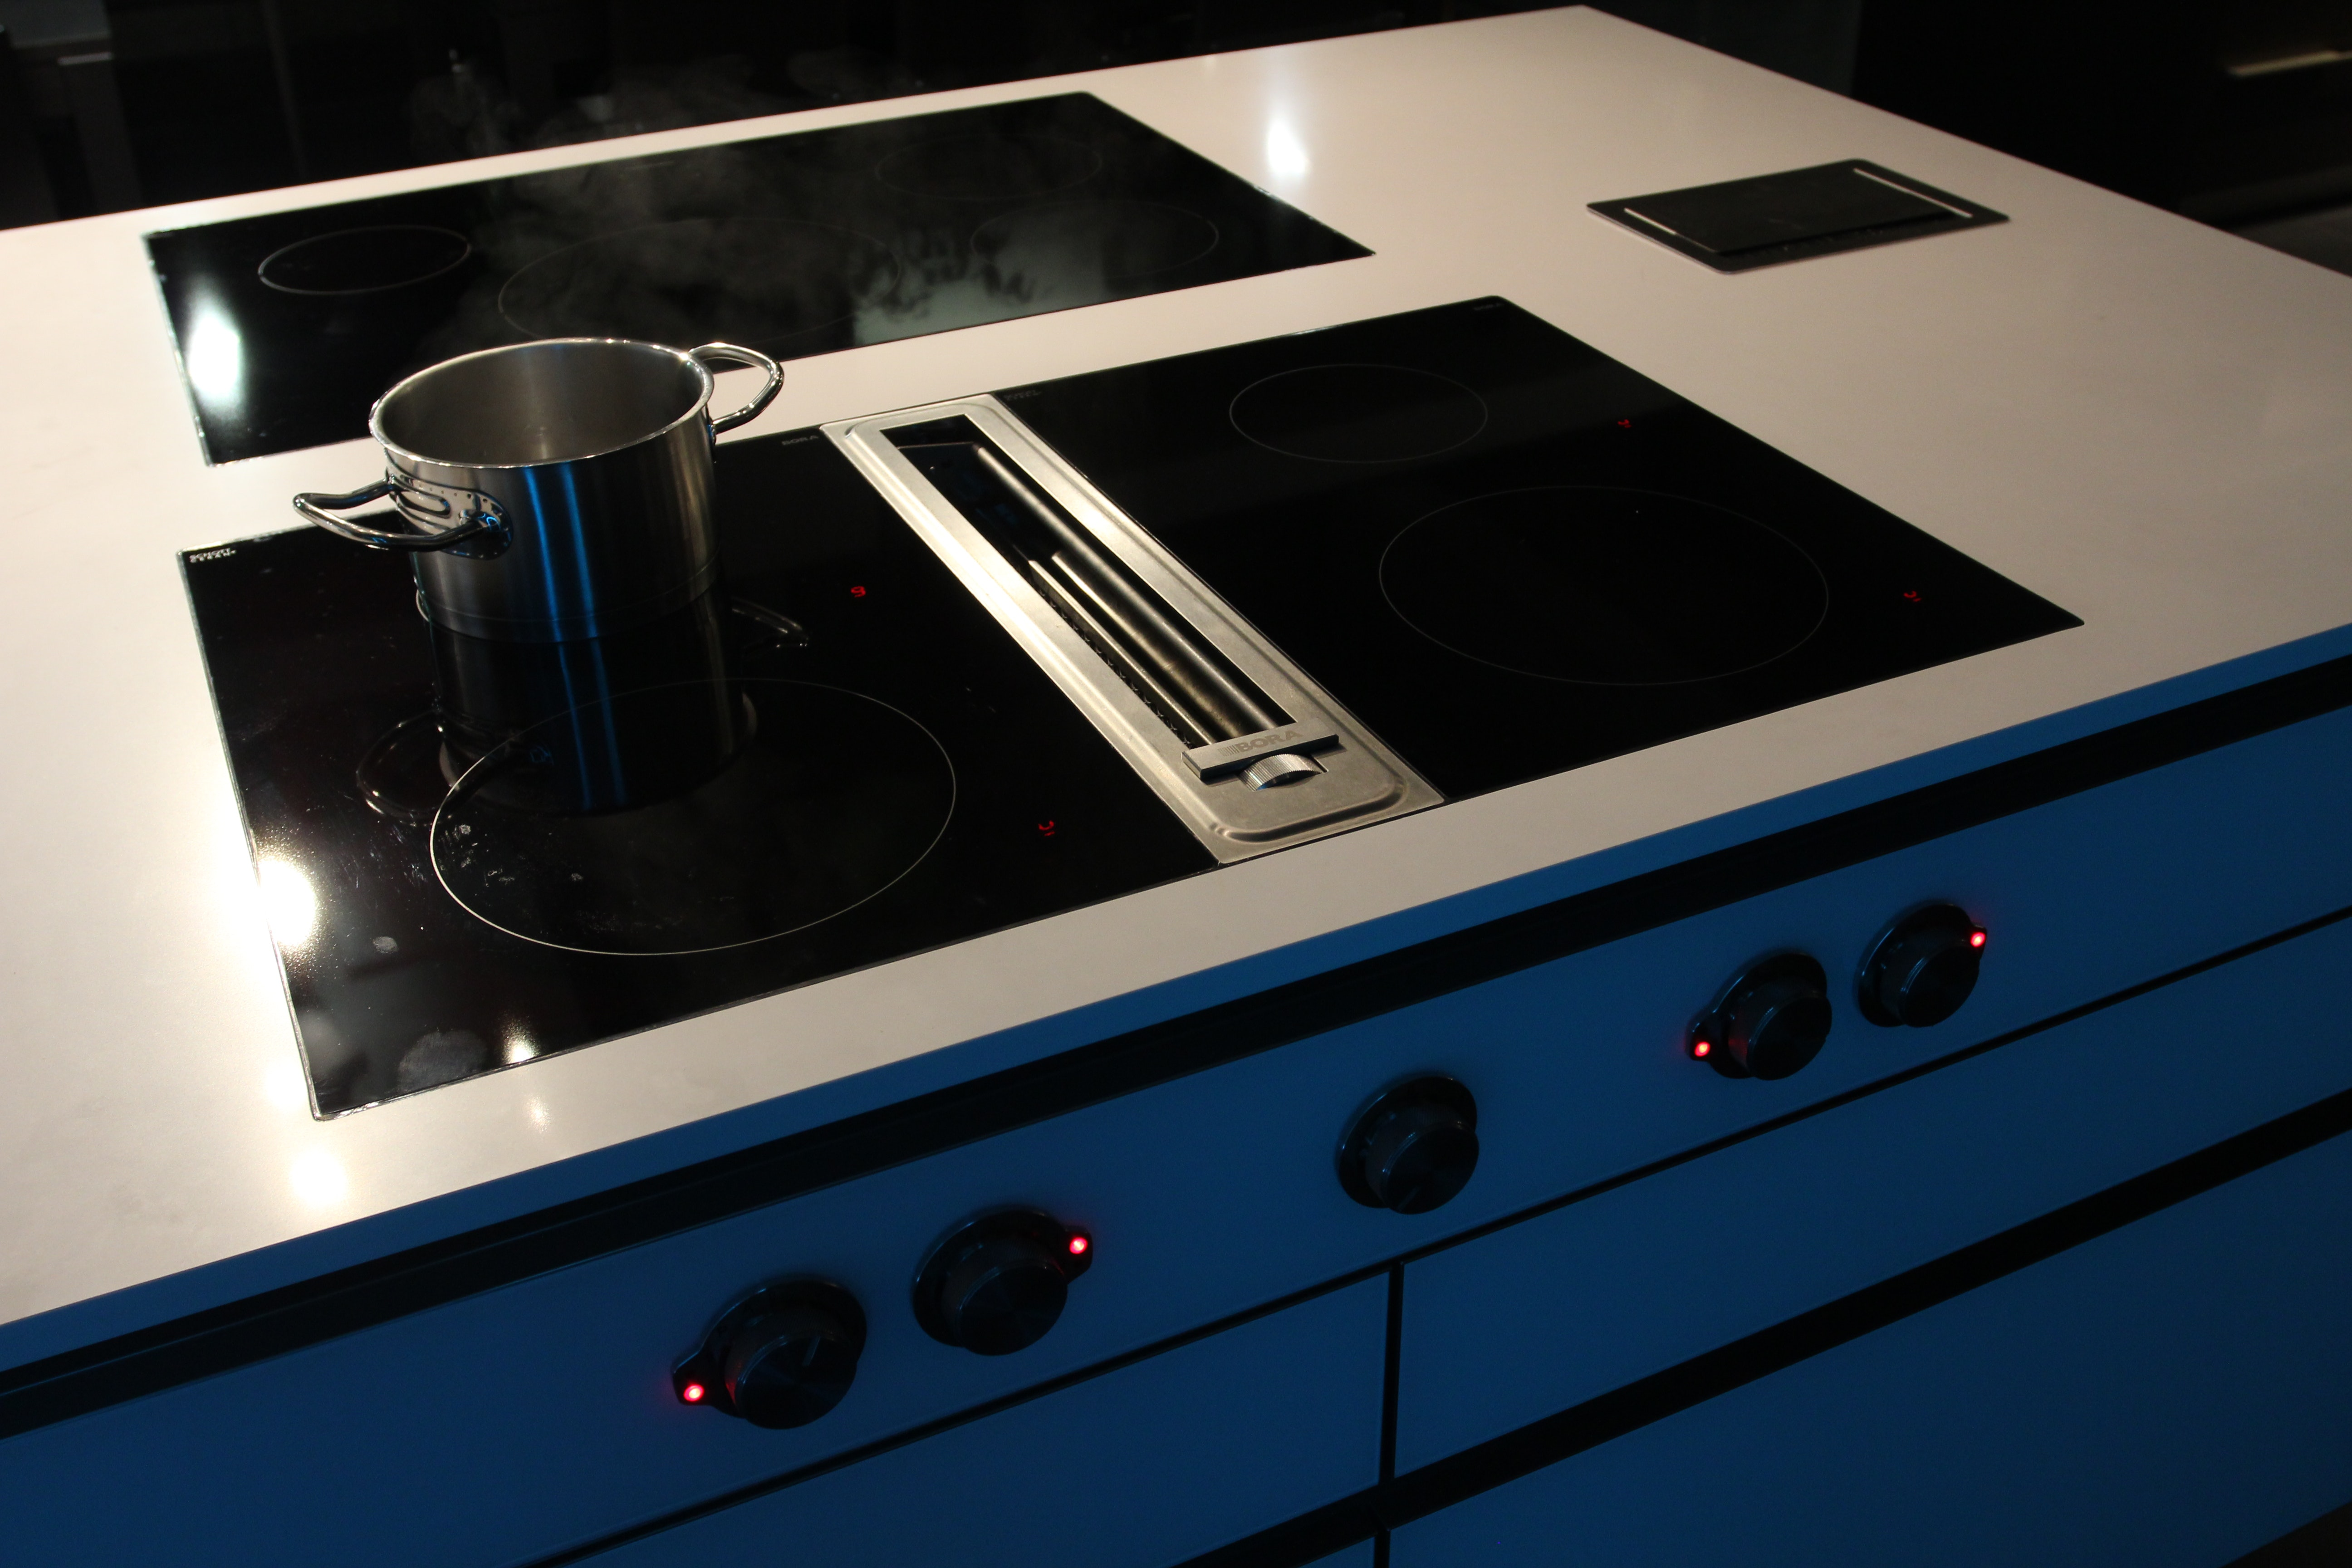 Charming Bora Downdraft System With 2 Induction Cooktops